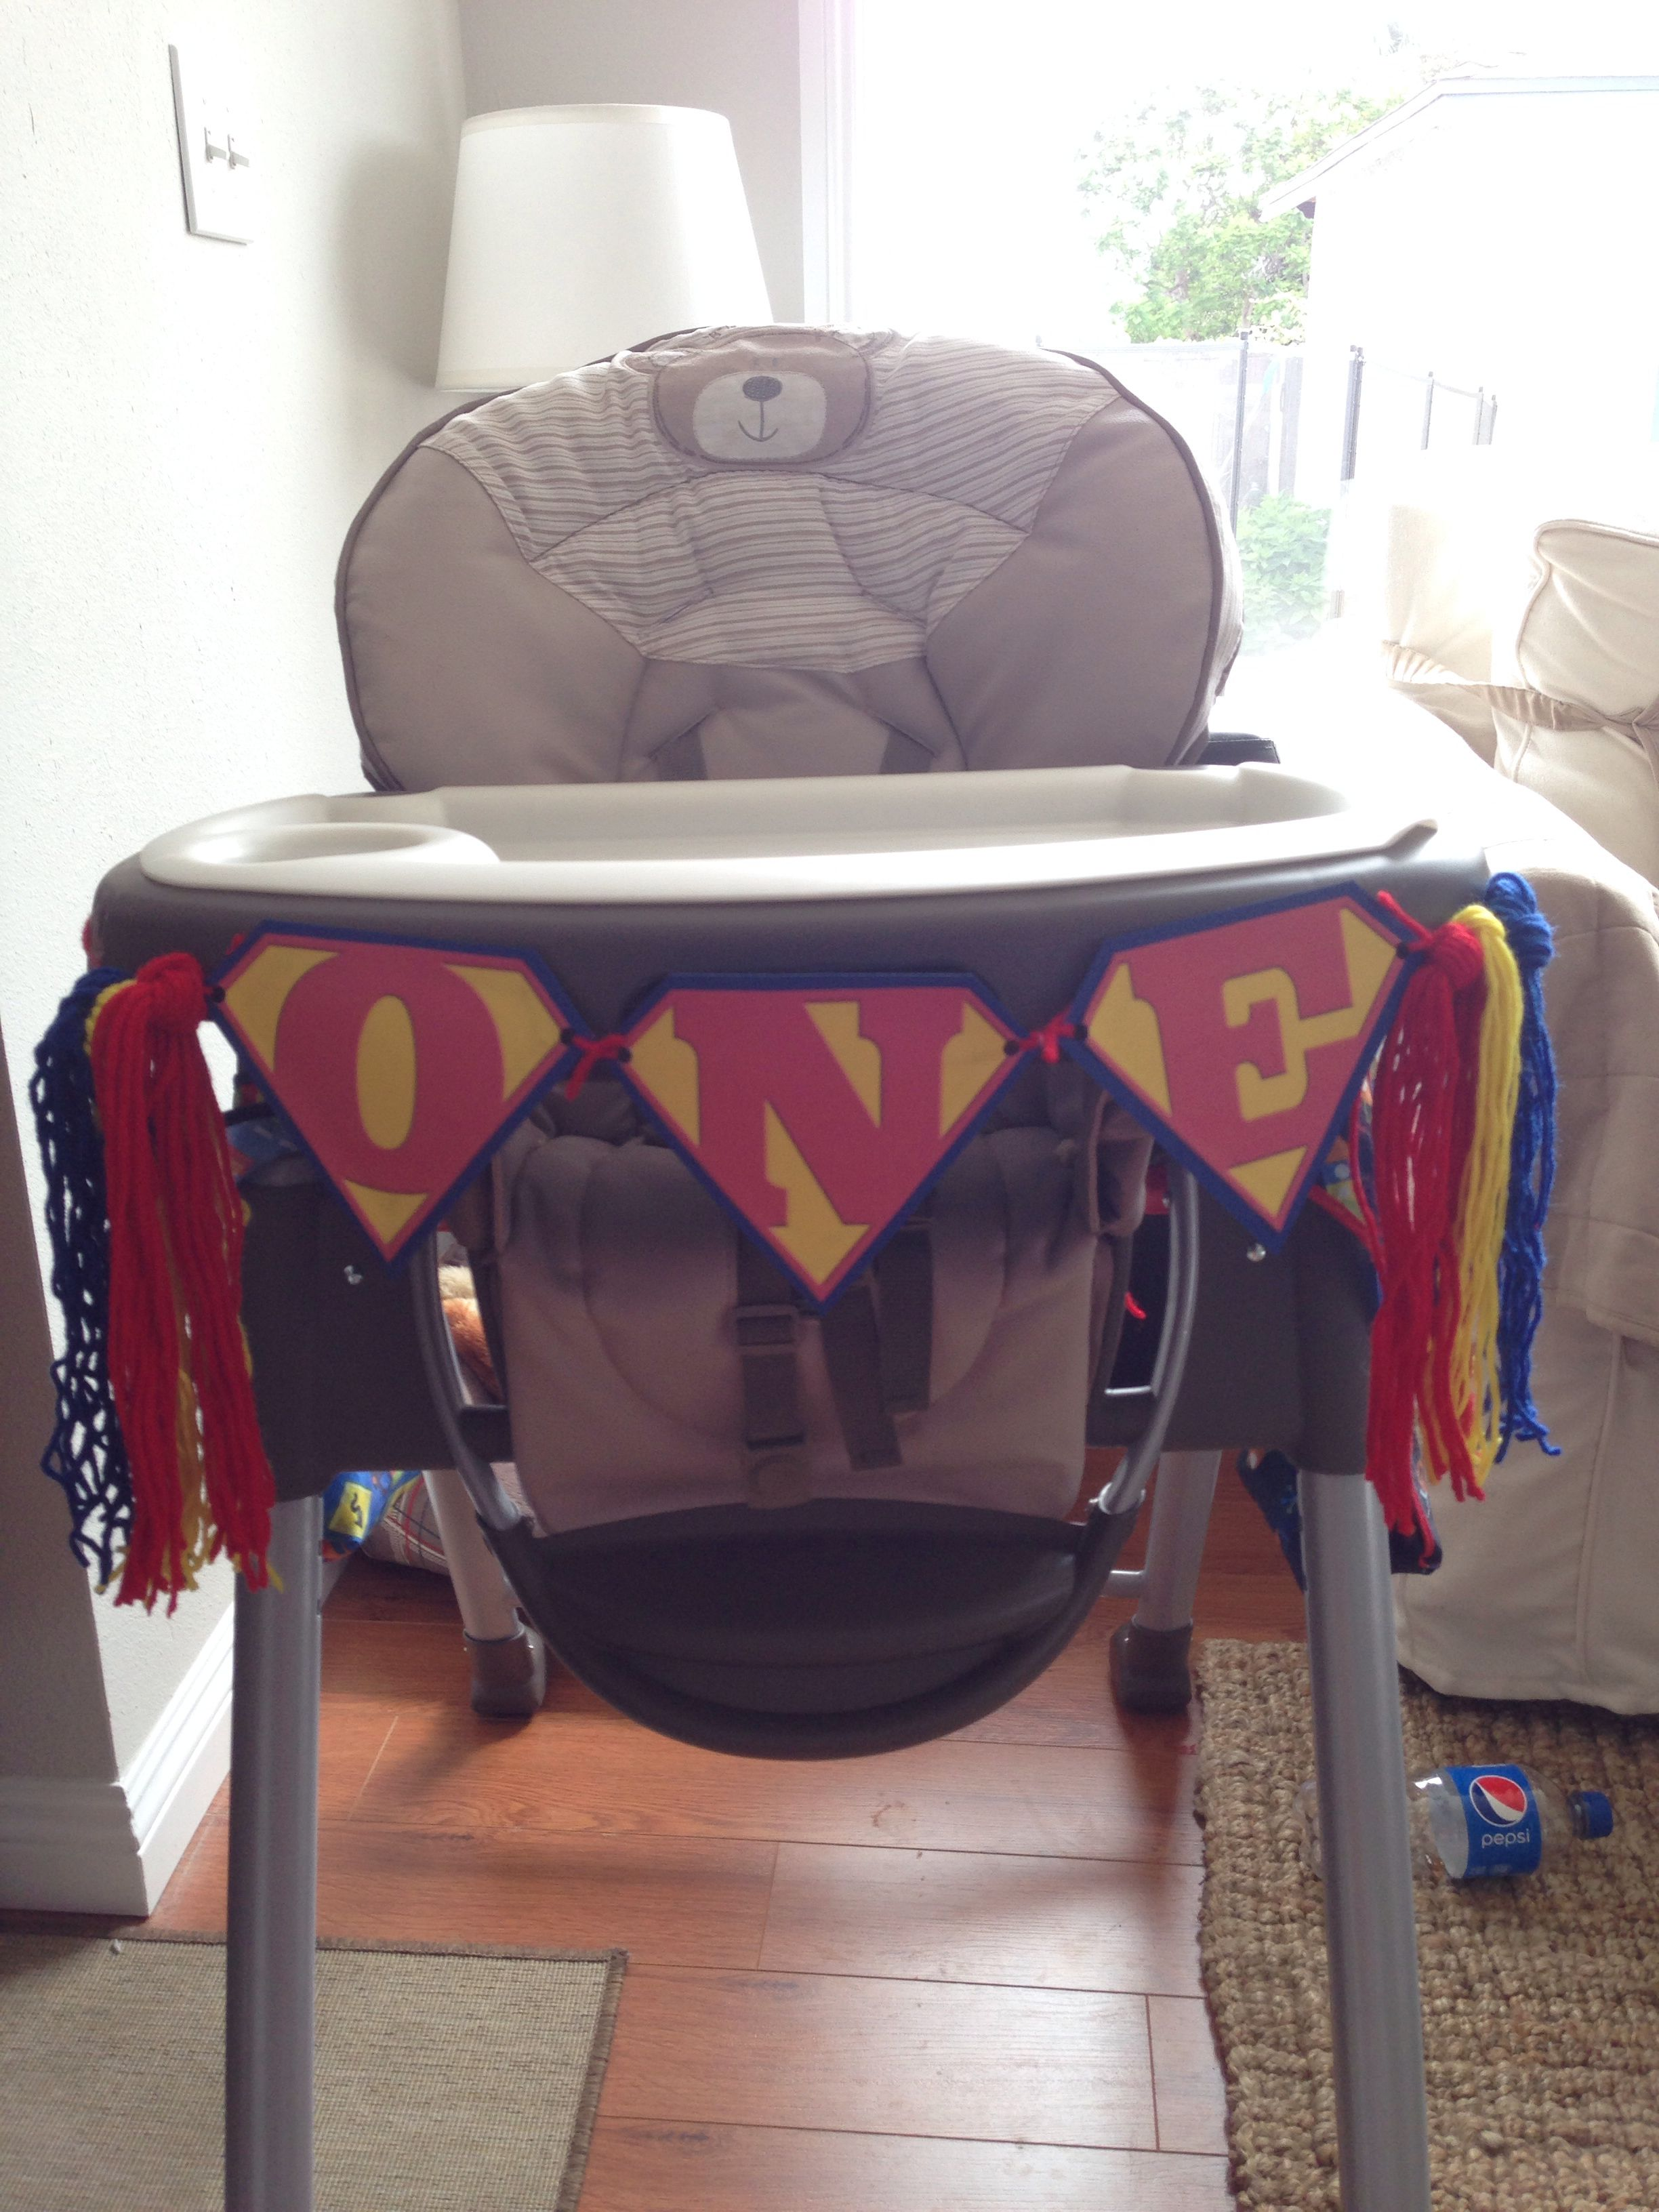 Decorated the Baby's high chair with a banner and Superman theme colored yarn...super cute and easy to do.